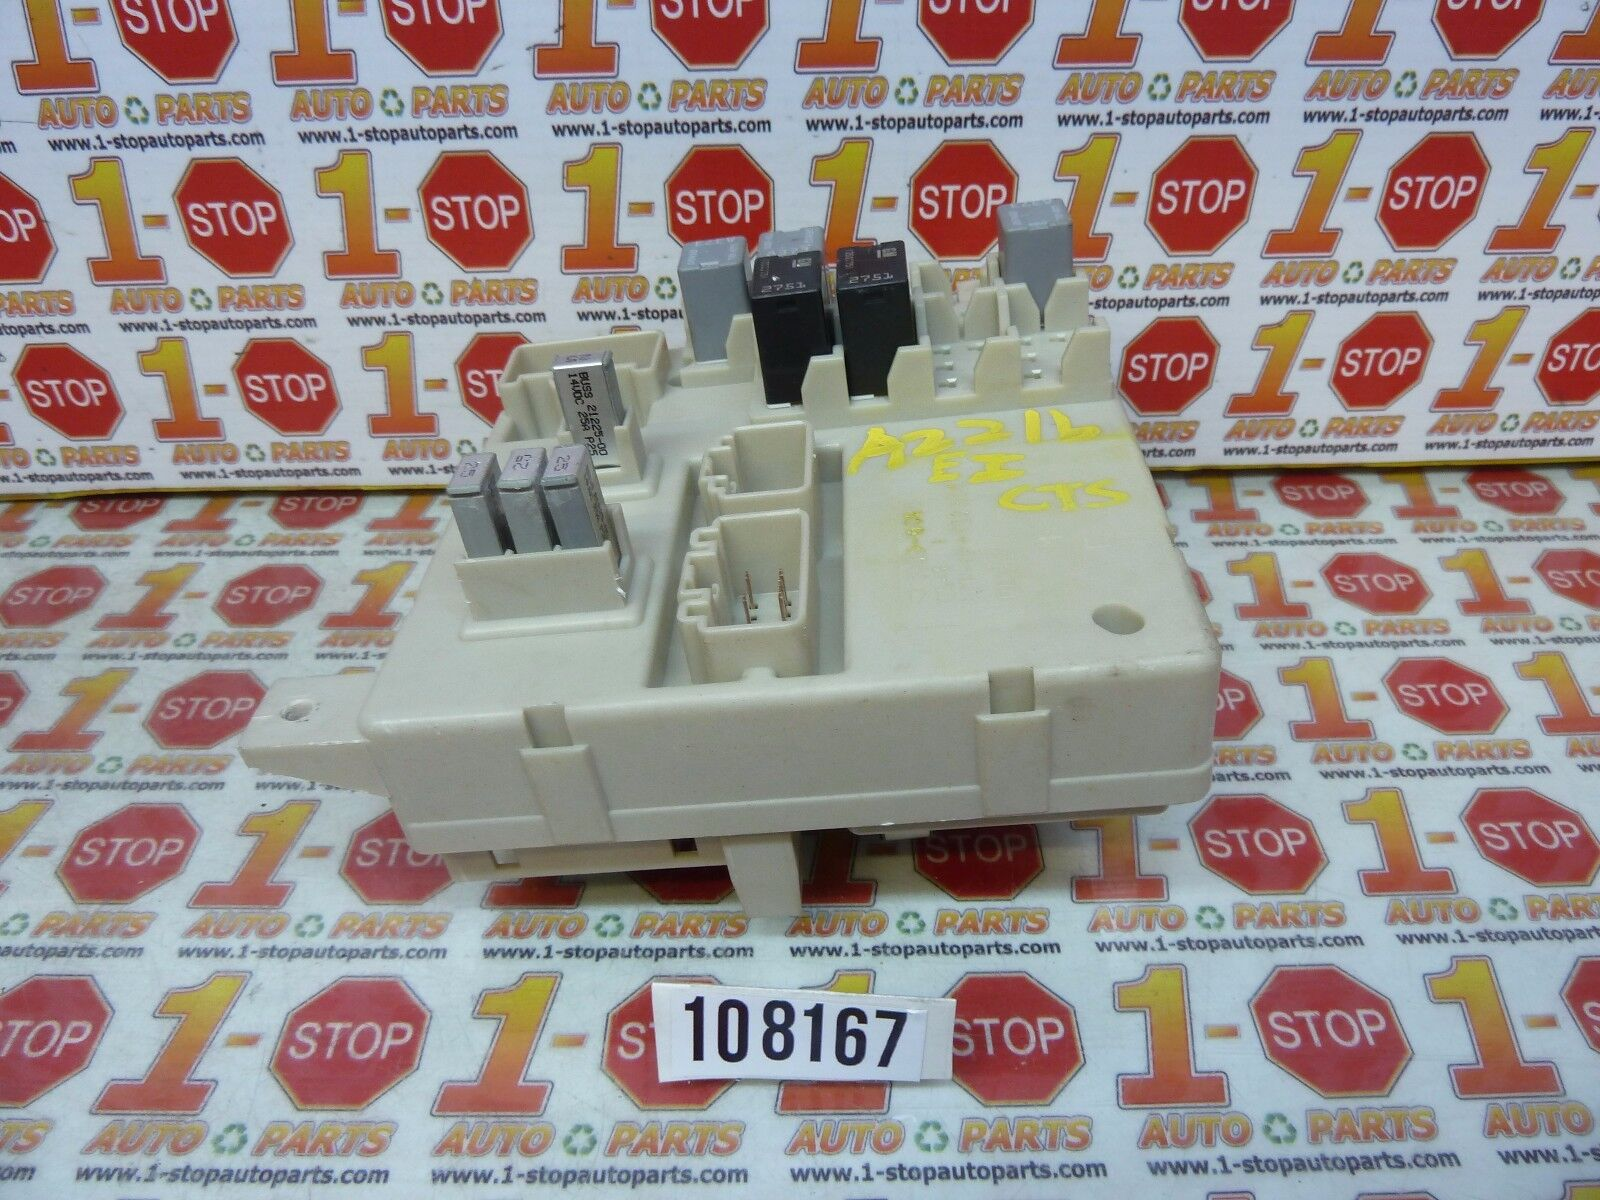 Used Cadillac Other Computer Chip Cruise Control Parts For Sale 2005 Cts Fuse Box Inside 2008 2009 Interior Cabin 25856534 Oem